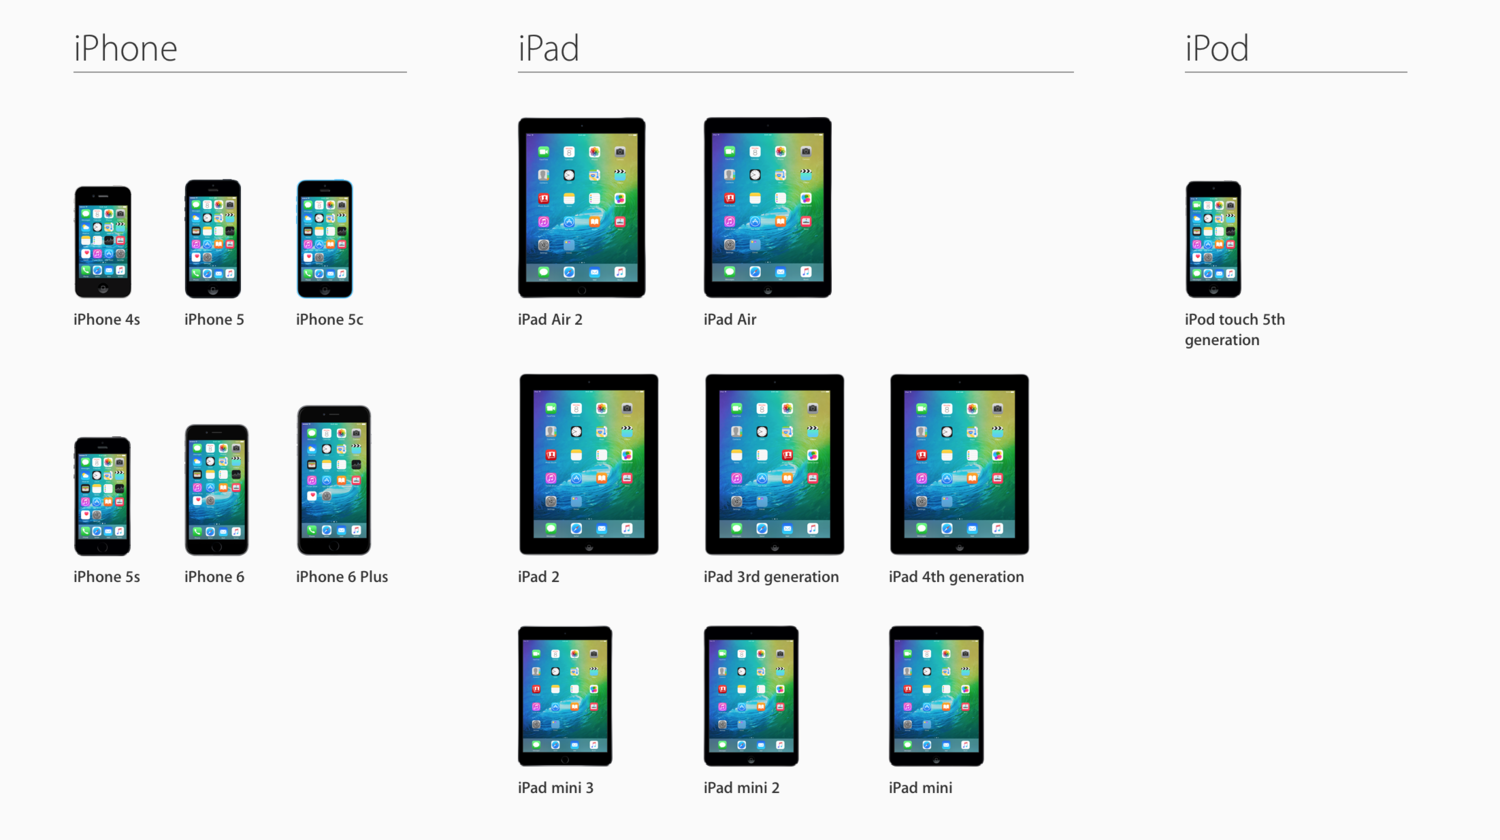 Devices running iOS 9